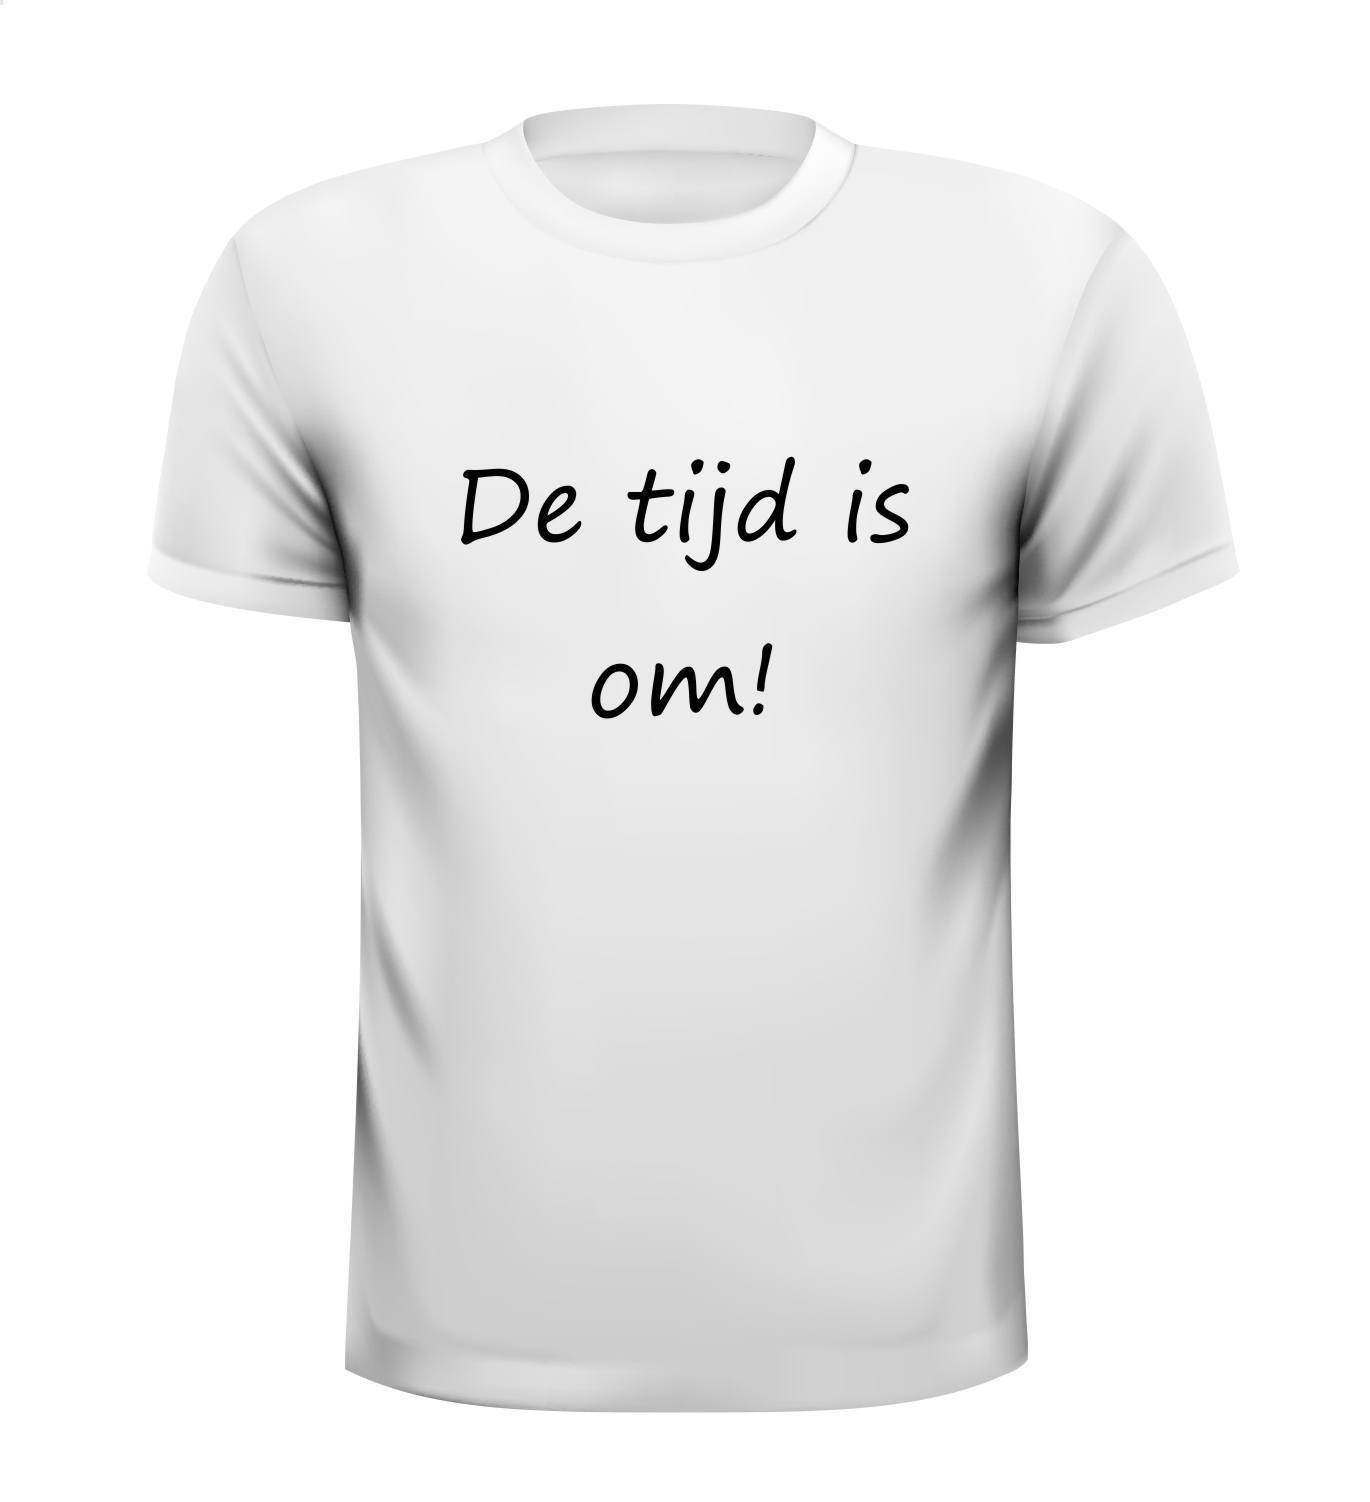 De tijd is om! T-shirt